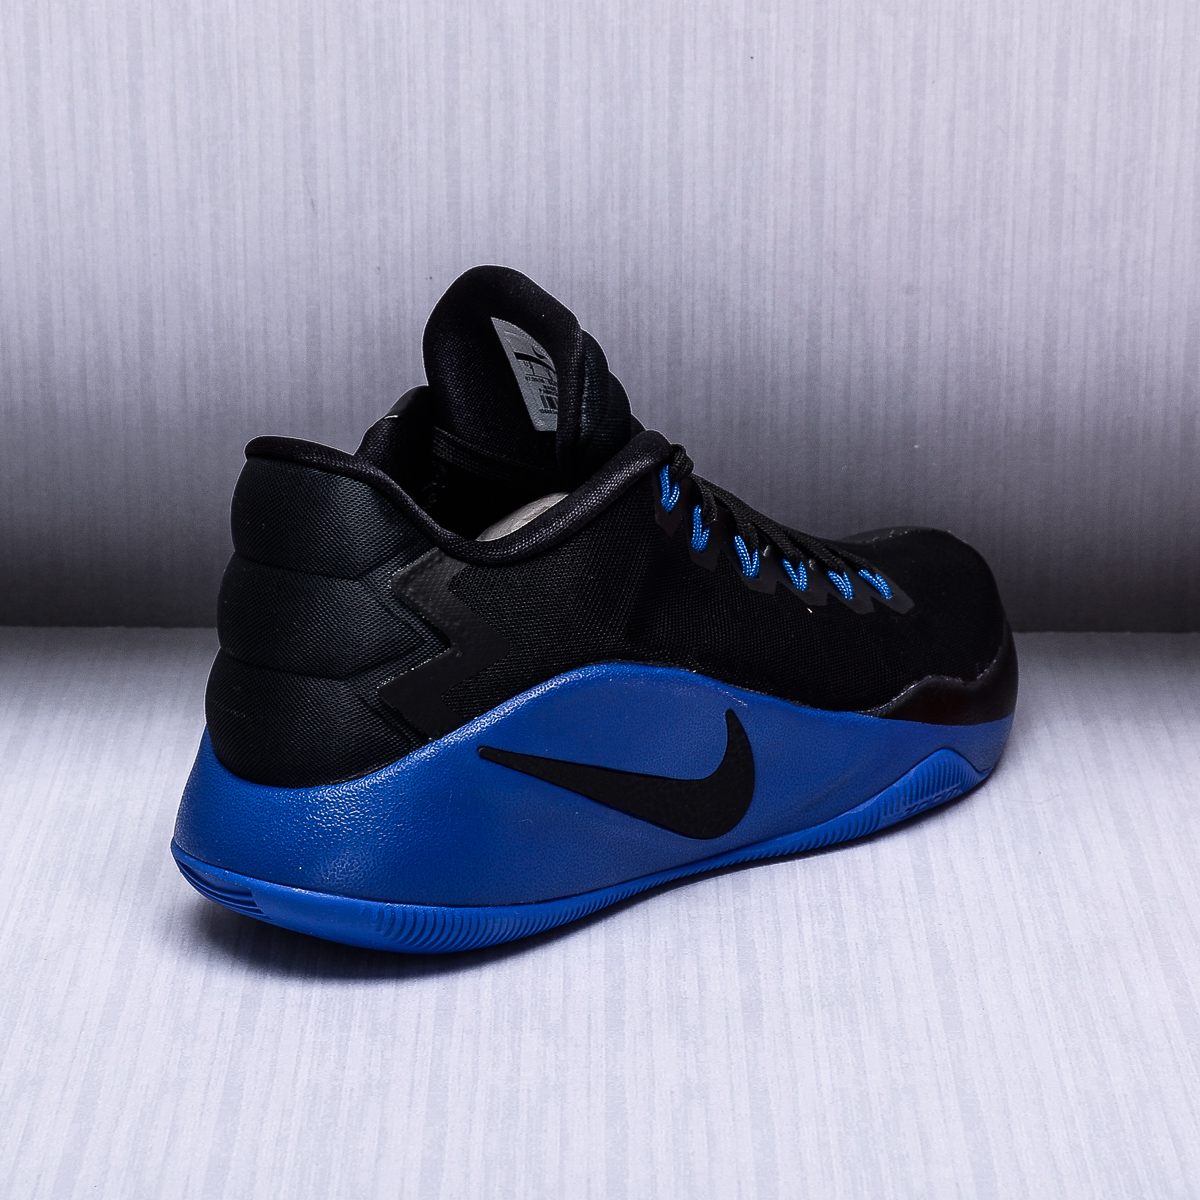 Basketball Shoes For A Low Price